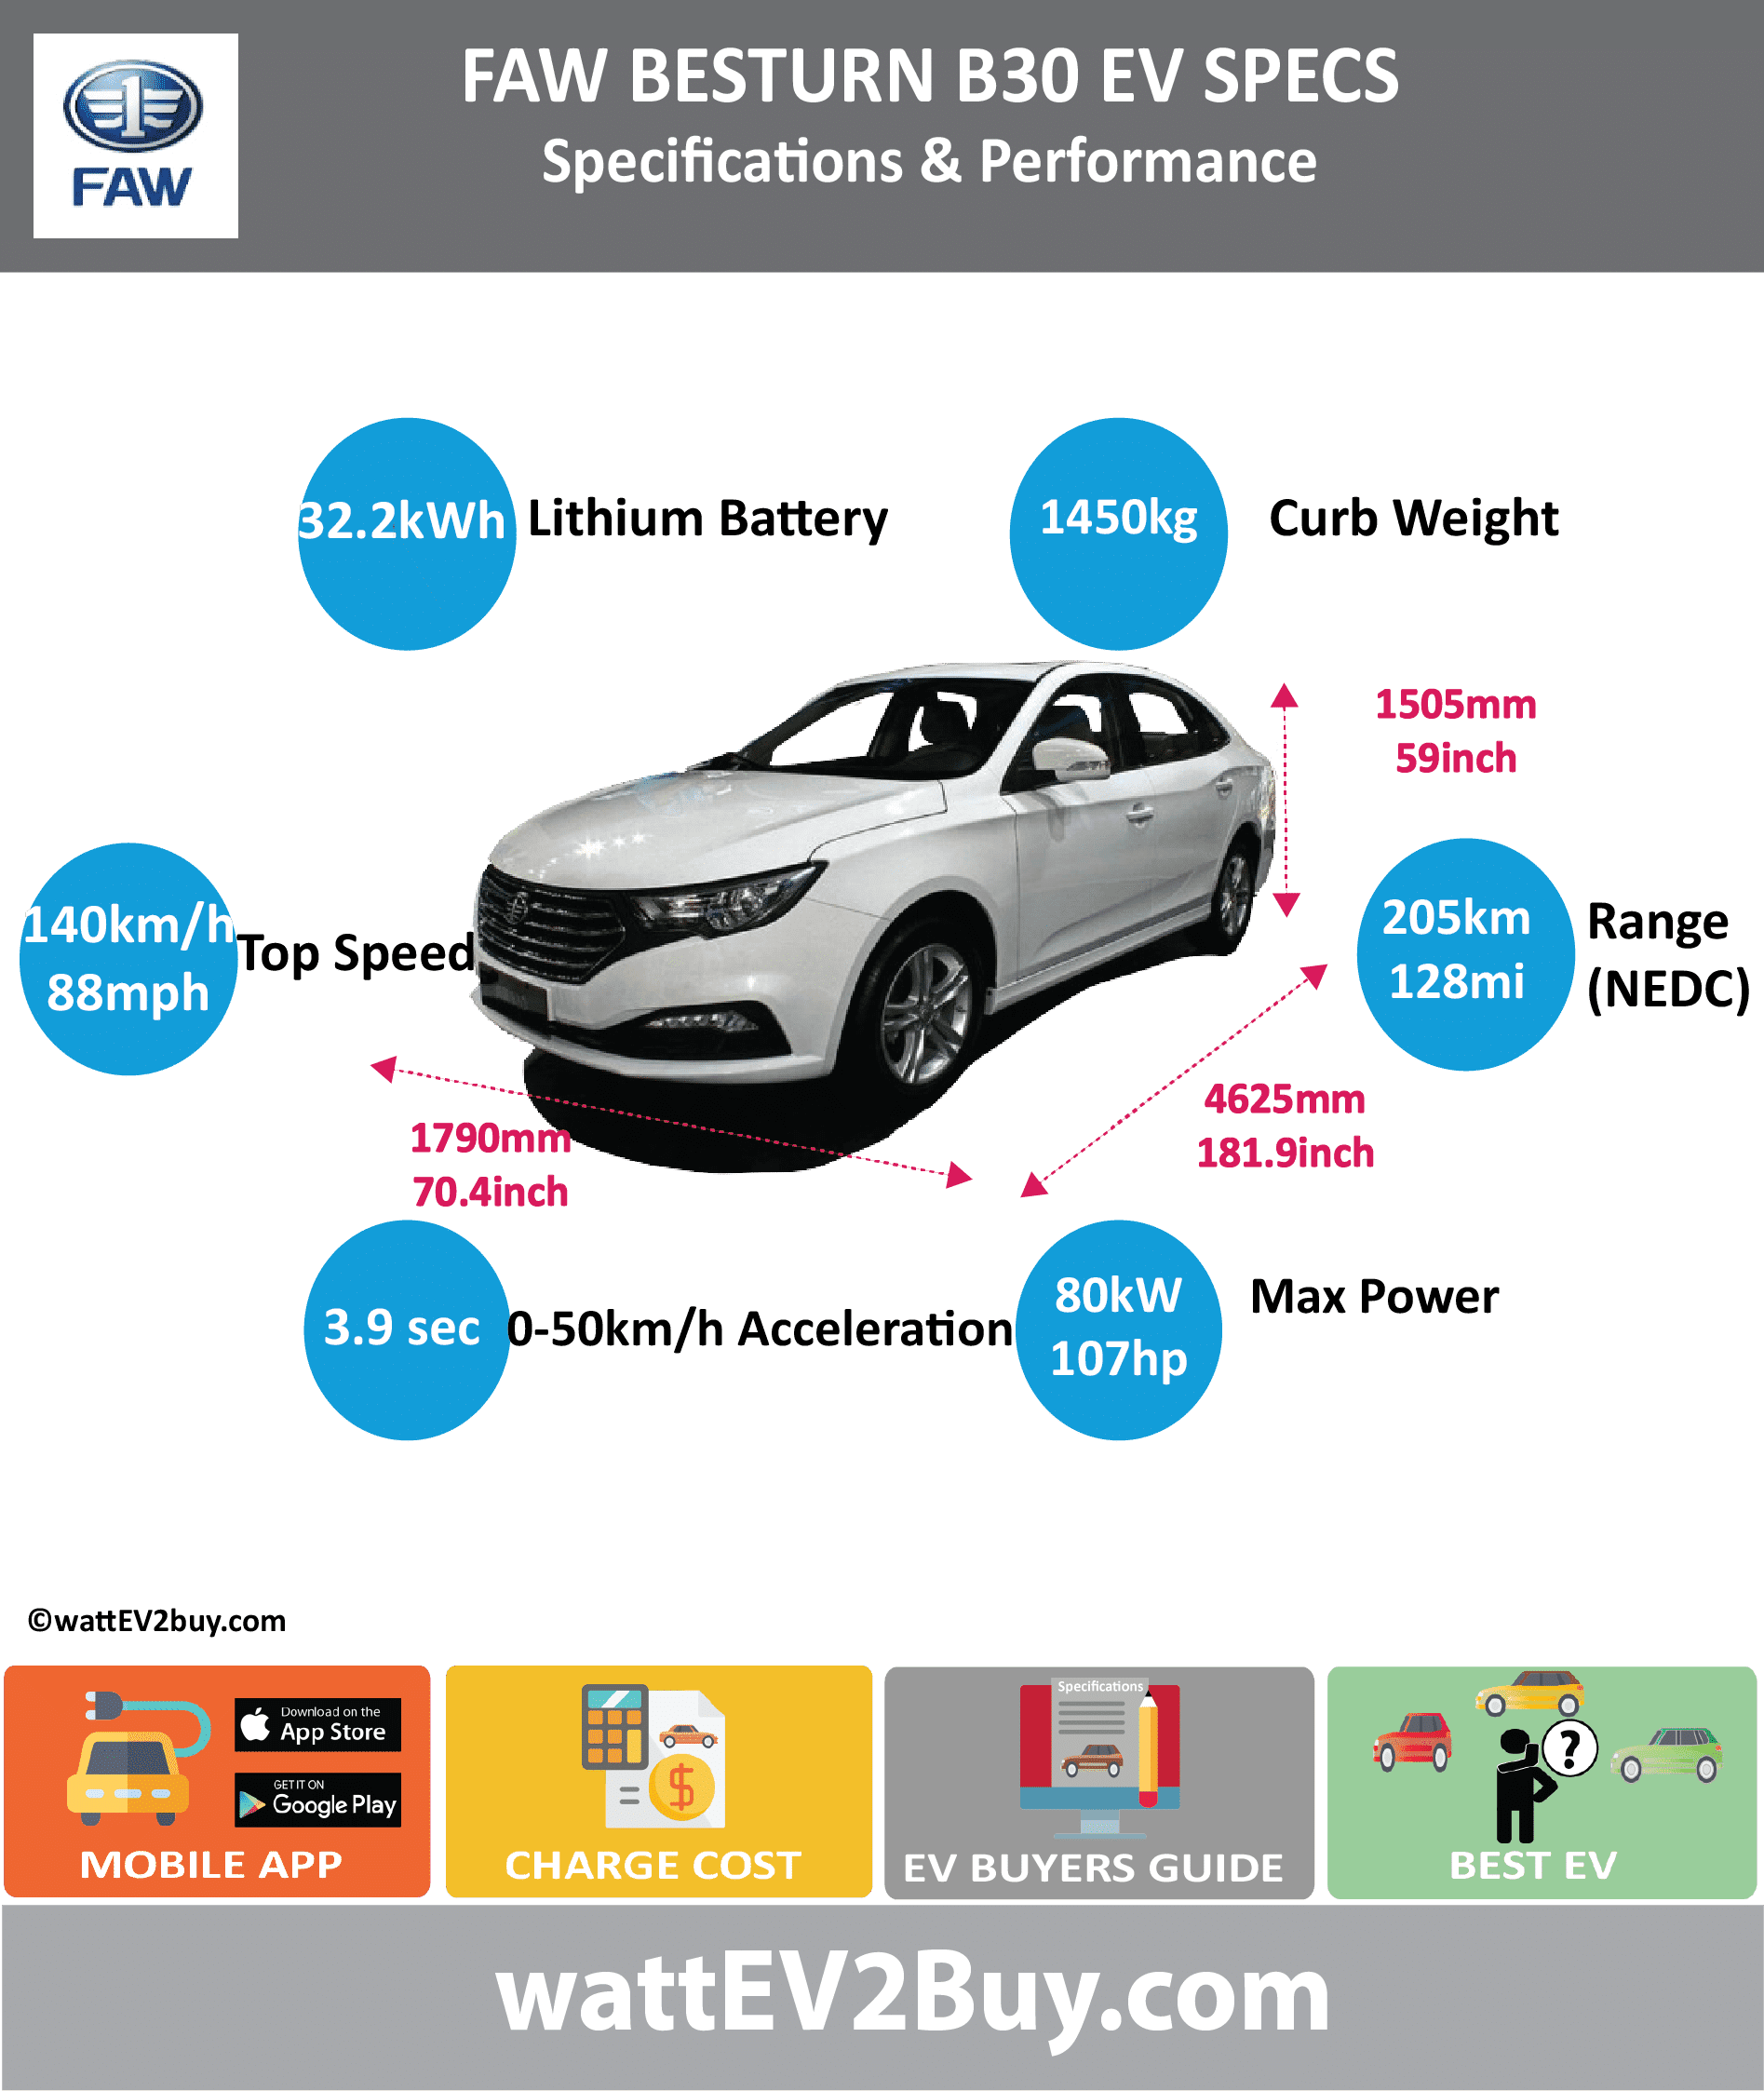 FAW Besturn B30 EV Specs wattev2Buy.com 2016 2017 Battery Chemistry Ternary Battery Capacity kWh 24.24 32.24 Battery Nominal rating kWh Voltage V Amps Ah Cells Modules Efficiency Weight (kg) 285 Cell Type SOC Cooling Cycles Battery Type Depth of Discharge (DOD) Energy Density Wh/kg Battery Manufacturer China FAW Group Corporation Battery Warranty - years Battery Warranty - km Battery Warranty - miles Battery Electric Range - at constant 38mph 175 Battery Electric Range - at constant 60km/h 280 Battery Electric Range - NEDC Mi 112.5 128.125 Battery Electric Range - NEDC km 180 205 Battery Electric Range - CCM Mi Battery Electric Range - CCM km Battery Electric Range - EPA Mi Battery Electric Range - EPA km Electric Top Speed - mph 87.5 Electric Top Speed - km/h 140 Acceleration 0 - 100km/h sec Acceleration 0 - 50km/h sec 3.9 Acceleration 0 - 62mph sec Acceleration 0 - 60mph sec Acceleration 0 - 37.2mph sec Wireless Charging Direct Current Fast Charge kW Charger Efficiency Onboard Charger kW Onboard Charger Optional kW Charging Cord - amps Charging Cord - volts LV 1 Charge kW LV 1 Charge Time (Hours) LV 2 Charge kW LV 2 Charge Time (Hours) LV 3 CCS/Combo kW LV 3 Charge Time (min to 70%) LV 3 Charge Time (min to 80%) LV 3 Charge Time (mi) LV 3 Charge Time (km) Supercharger Charging System kW Charger Output Charge Connector Power Outlet kW Power Outlet Amps MPGe Combined - miles MPGe Combined - km MPGe City - miles MPGe City - km MPGe Highway - miles MPGe Highway - km Max Power - hp (Electric Max) 107.2816 Max Power - kW (Electric Max) 80 Max Torque - lb.ft (Electric Max) Max Torque - N.m (Electric Max) Drivetrain Generator Motor Type Electric Motor Manufacturer Shanghai Electric Drive Co., Ltd. Electric Motor Output kW Electric Motor Output hp Transmission Electric Motor - Rear Max Power - hp (Rear) Max Power - kW (Rear) Max Torque - lb.ft (Rear) Max Torque - N.m (Rear) Electric Motor - Front Max Power - hp (Front) Max Power - kW (Front) Max Torque - lb.ft (Front) Max Torque - N.m (Front) Energy Consumption kWh/100km Energy Consumption kWh/100miles Deposit GB Battery Lease per month EU Battery Lease per month China Battery Lease per month MSRP (expected) EU MSRP (before incentives & destination) GB MSRP (before incentives & destination) US MSRP (before incentives & destination) CHINA MSRP (before incentives & destination) Local Currency MSRP MSRP after incentives Vehicle Trims Doors 4 Seating 5 Dimensions Luggage (L) Luggage Max (L) GVWR (kg) 1830 GVWR (lbs) Curb Weight (kg) 1450 Curb Weight (lbs) Payload Capacity (kg) Payload Capacity (lbs) Towing Capacity (lbs) Max Load Height (m) Ground Clearance (inc) Ground Clearance (mm) Lenght (mm) 4625 Width (mm) 1790 Height (mm) 1505 Wheelbase (mm) 2630 Lenght (inc) 181.9 Width (inc) 70.4 Height (inc) 59.2 Wheelbase (inc) 103.5 Other Utility Factor Auto Show Unveil Availability Market Segment LCD Screen (inch) Class Safety Level Unveiled Relaunch First Delivery Chassis designed Based On AKA Self-Driving System SAE Autonomous Level Connectivity Unique Extras Incentives Home Charge Installation Public Charging Subsidy Chinese Name 奔腾 B30EV Model Code CA7001EVA